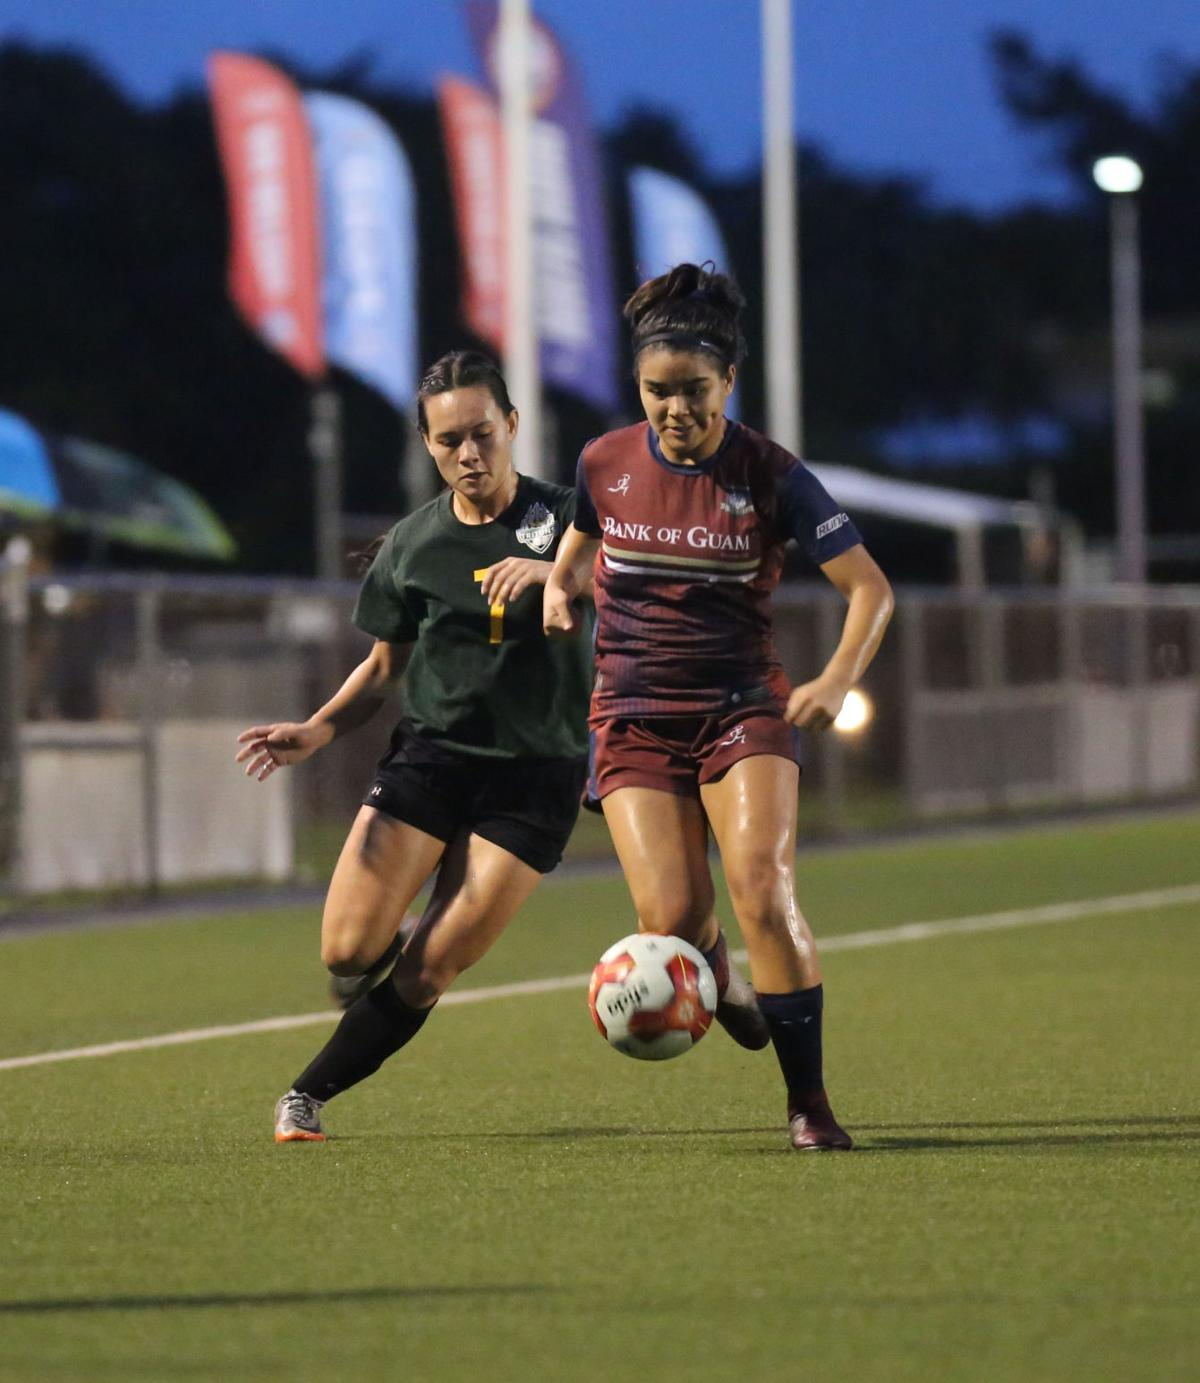 Strykers kick off opener with win